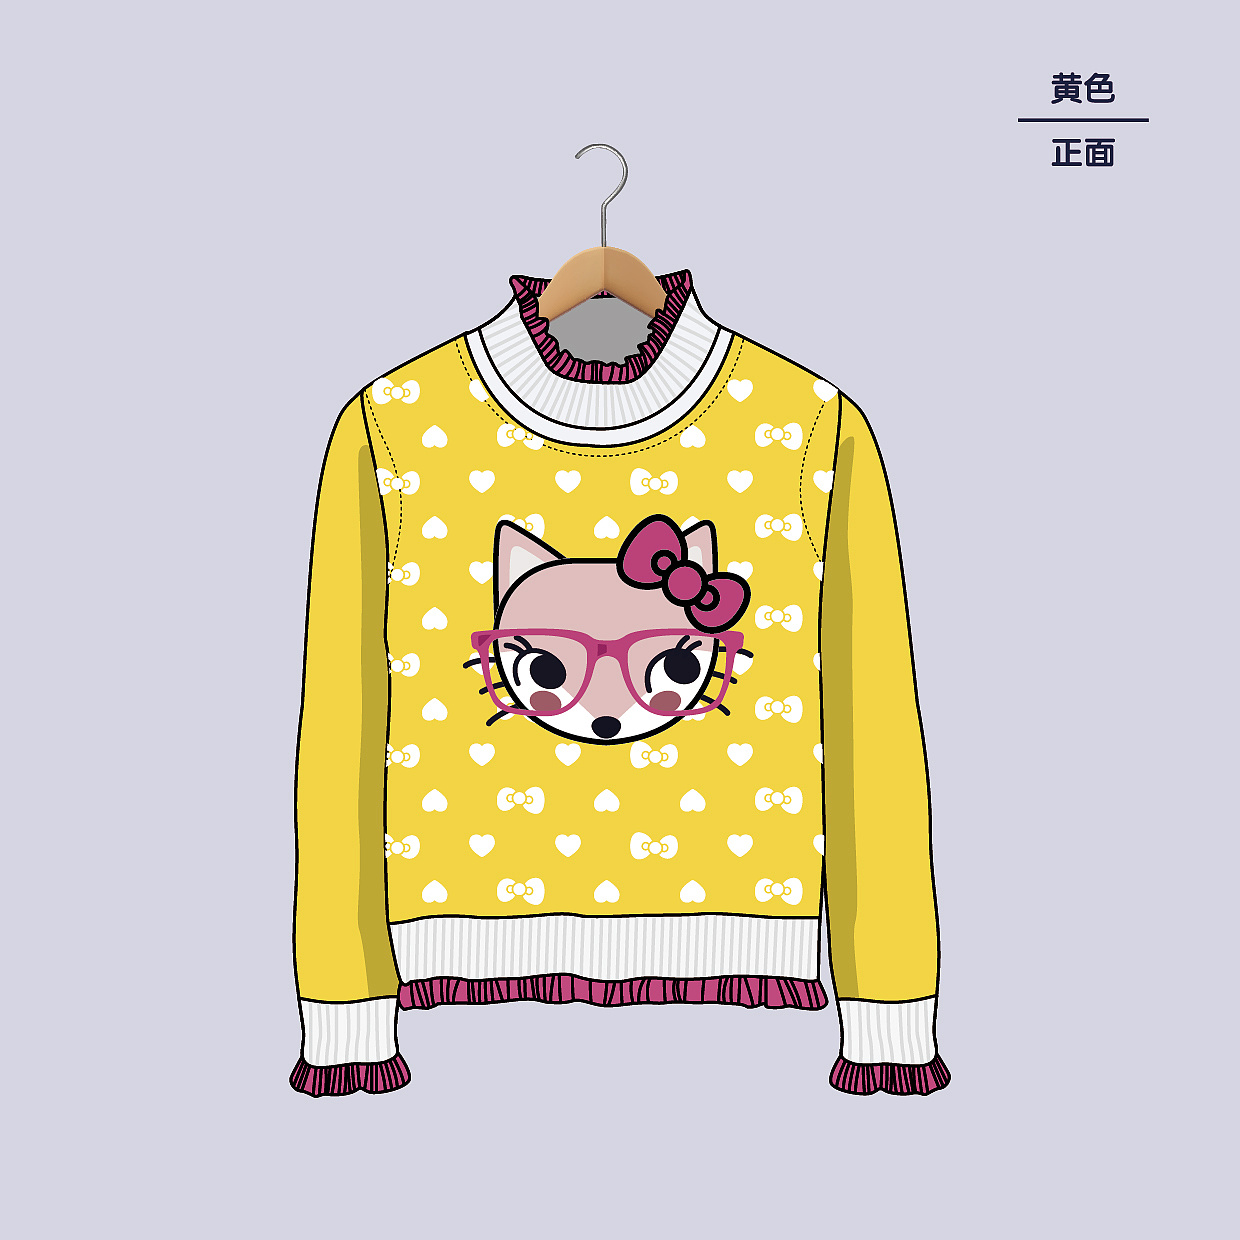 The fox sweater The Graphic Design